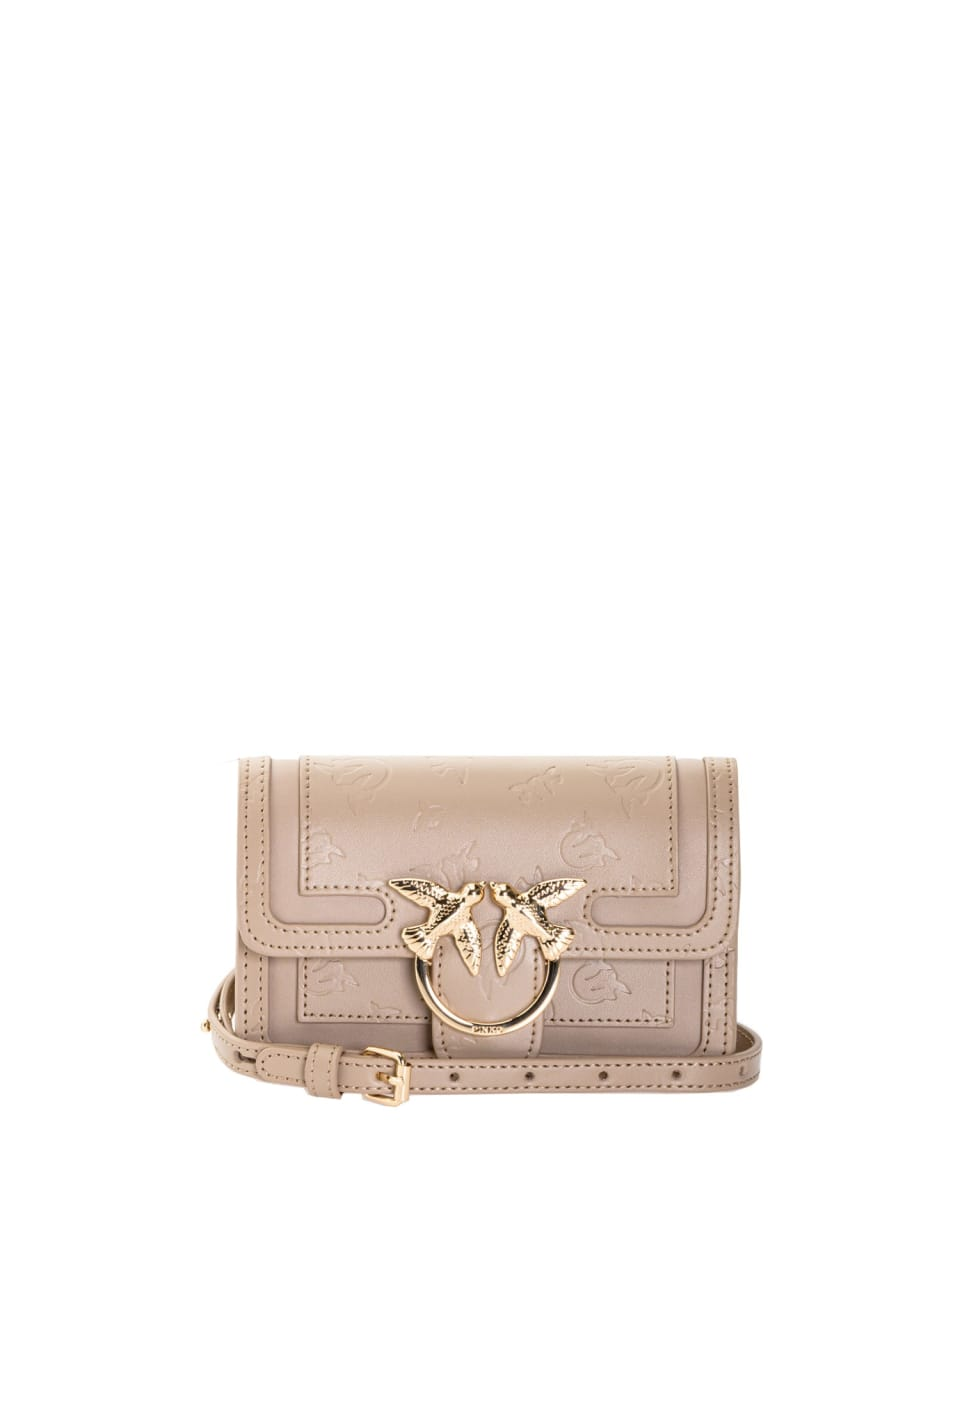 Baby Love Bag Monogram en cuir